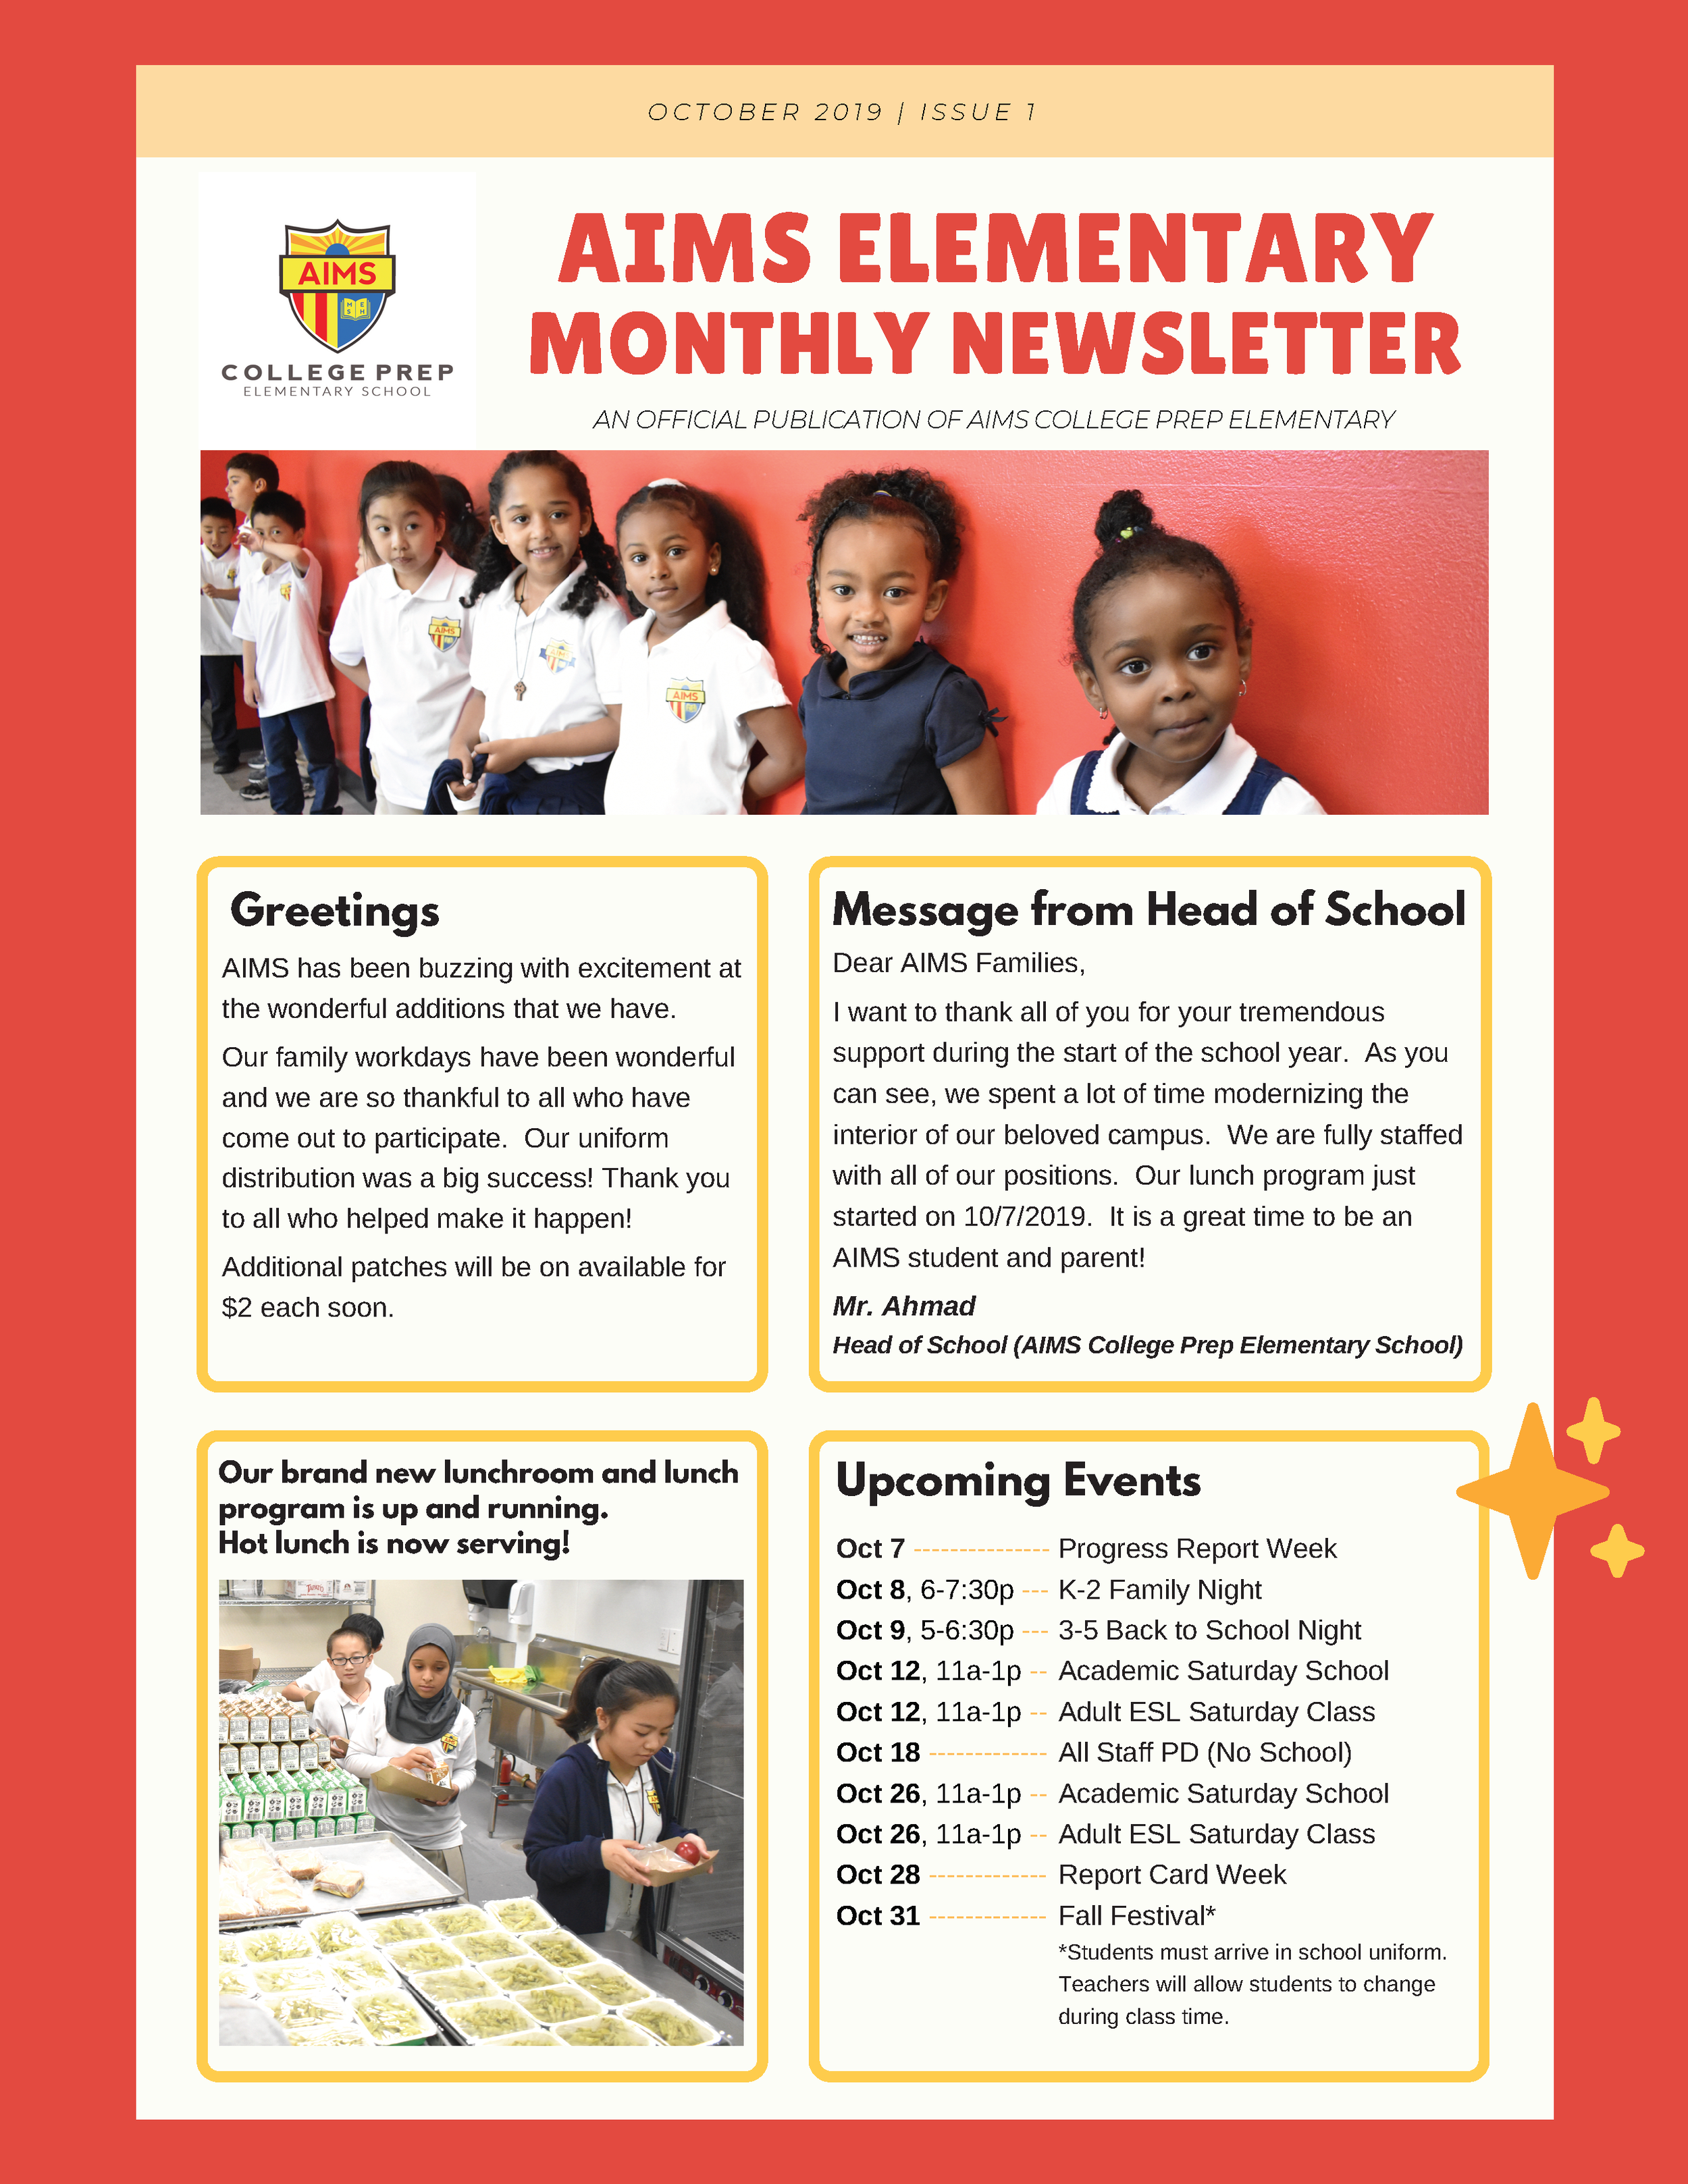 AIMS Elementary Newsletter - Issue 1 - Oct 2019 - Page_1.png